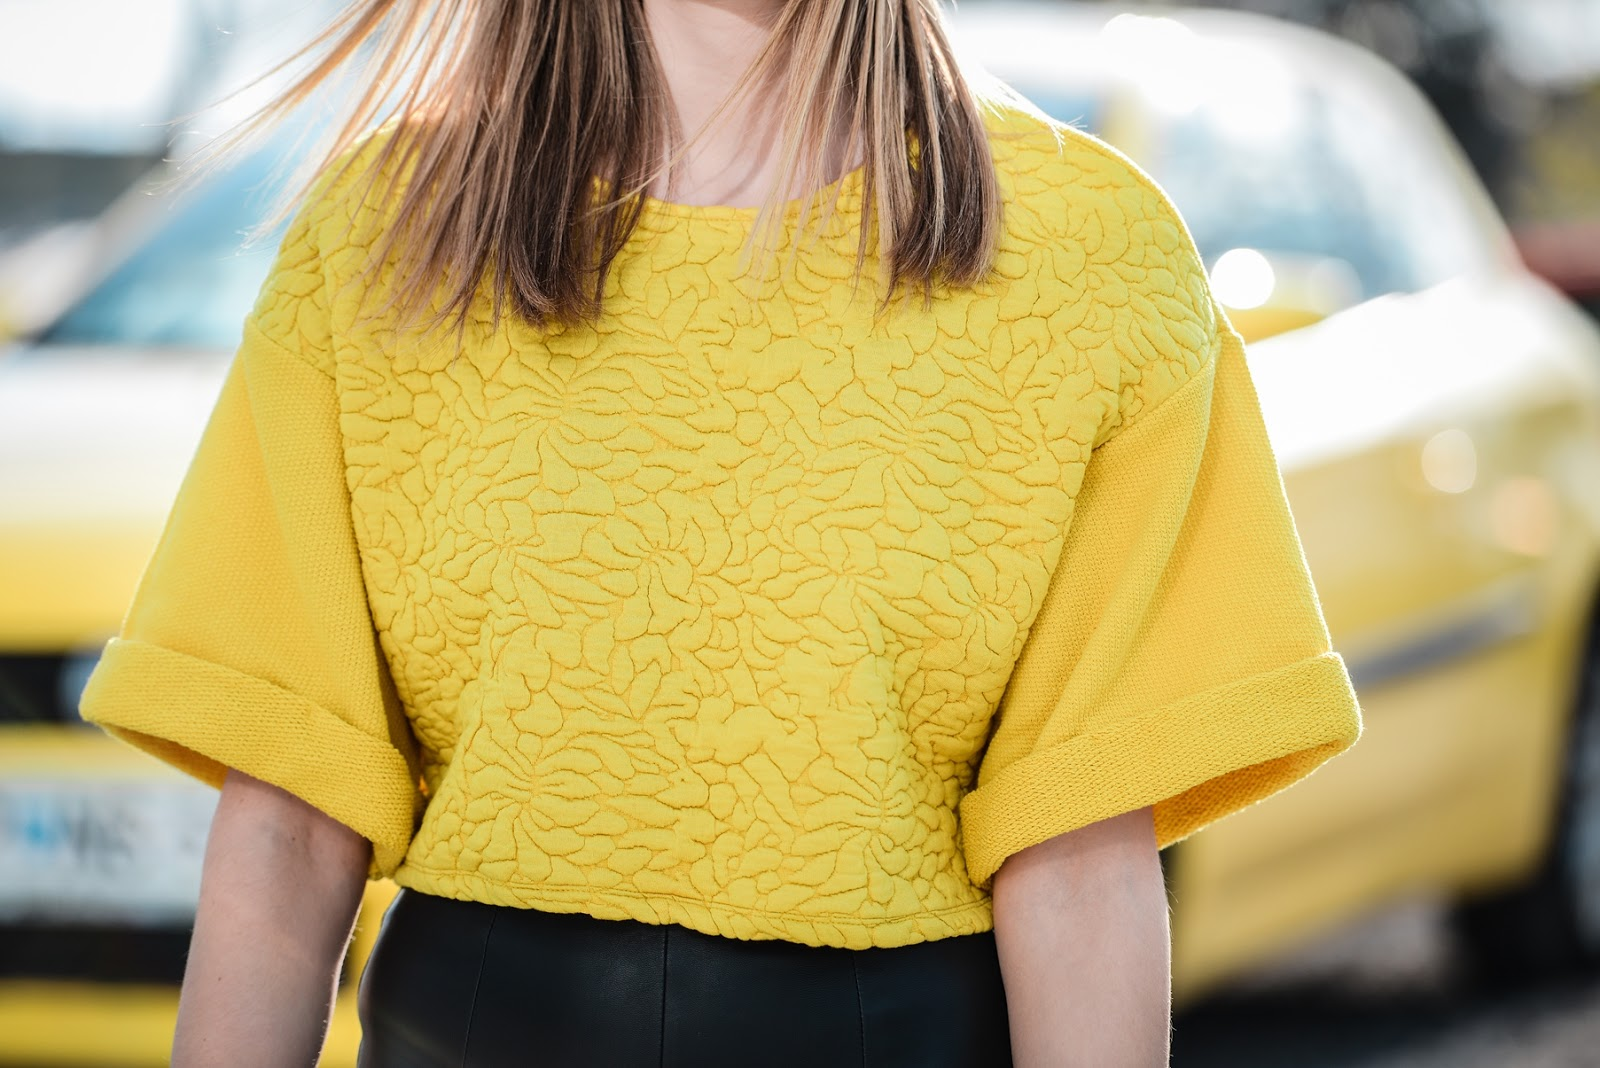 hm yellow sweater crop top sleeves 2014, style blogger, fashion blogger